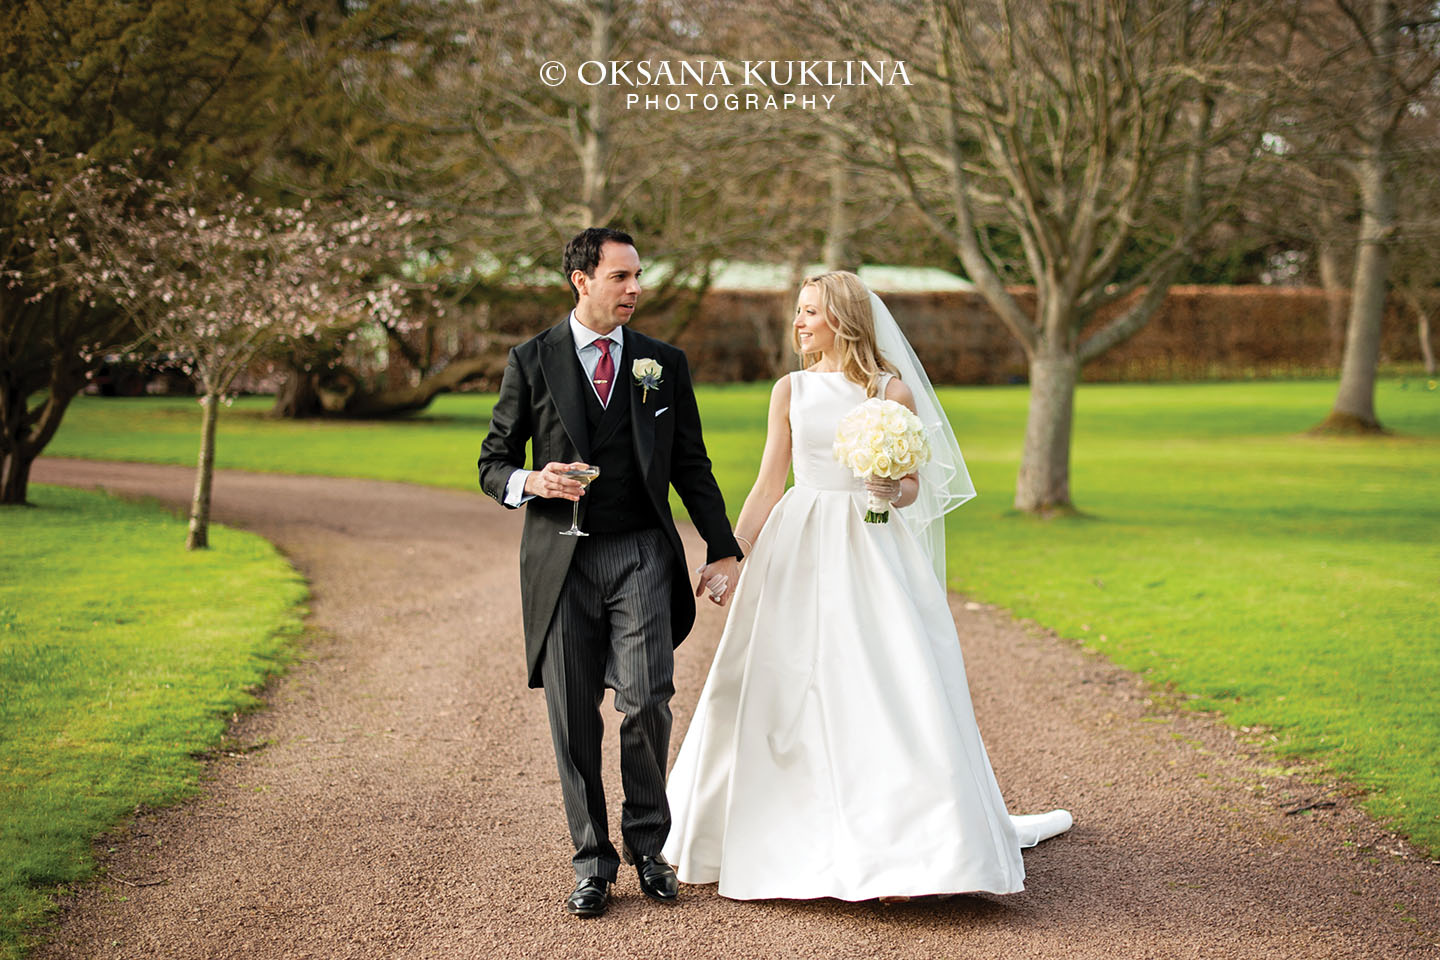 Jill and Navin's wedding in Haddington, Scotland by Oksana Kuklina Photography